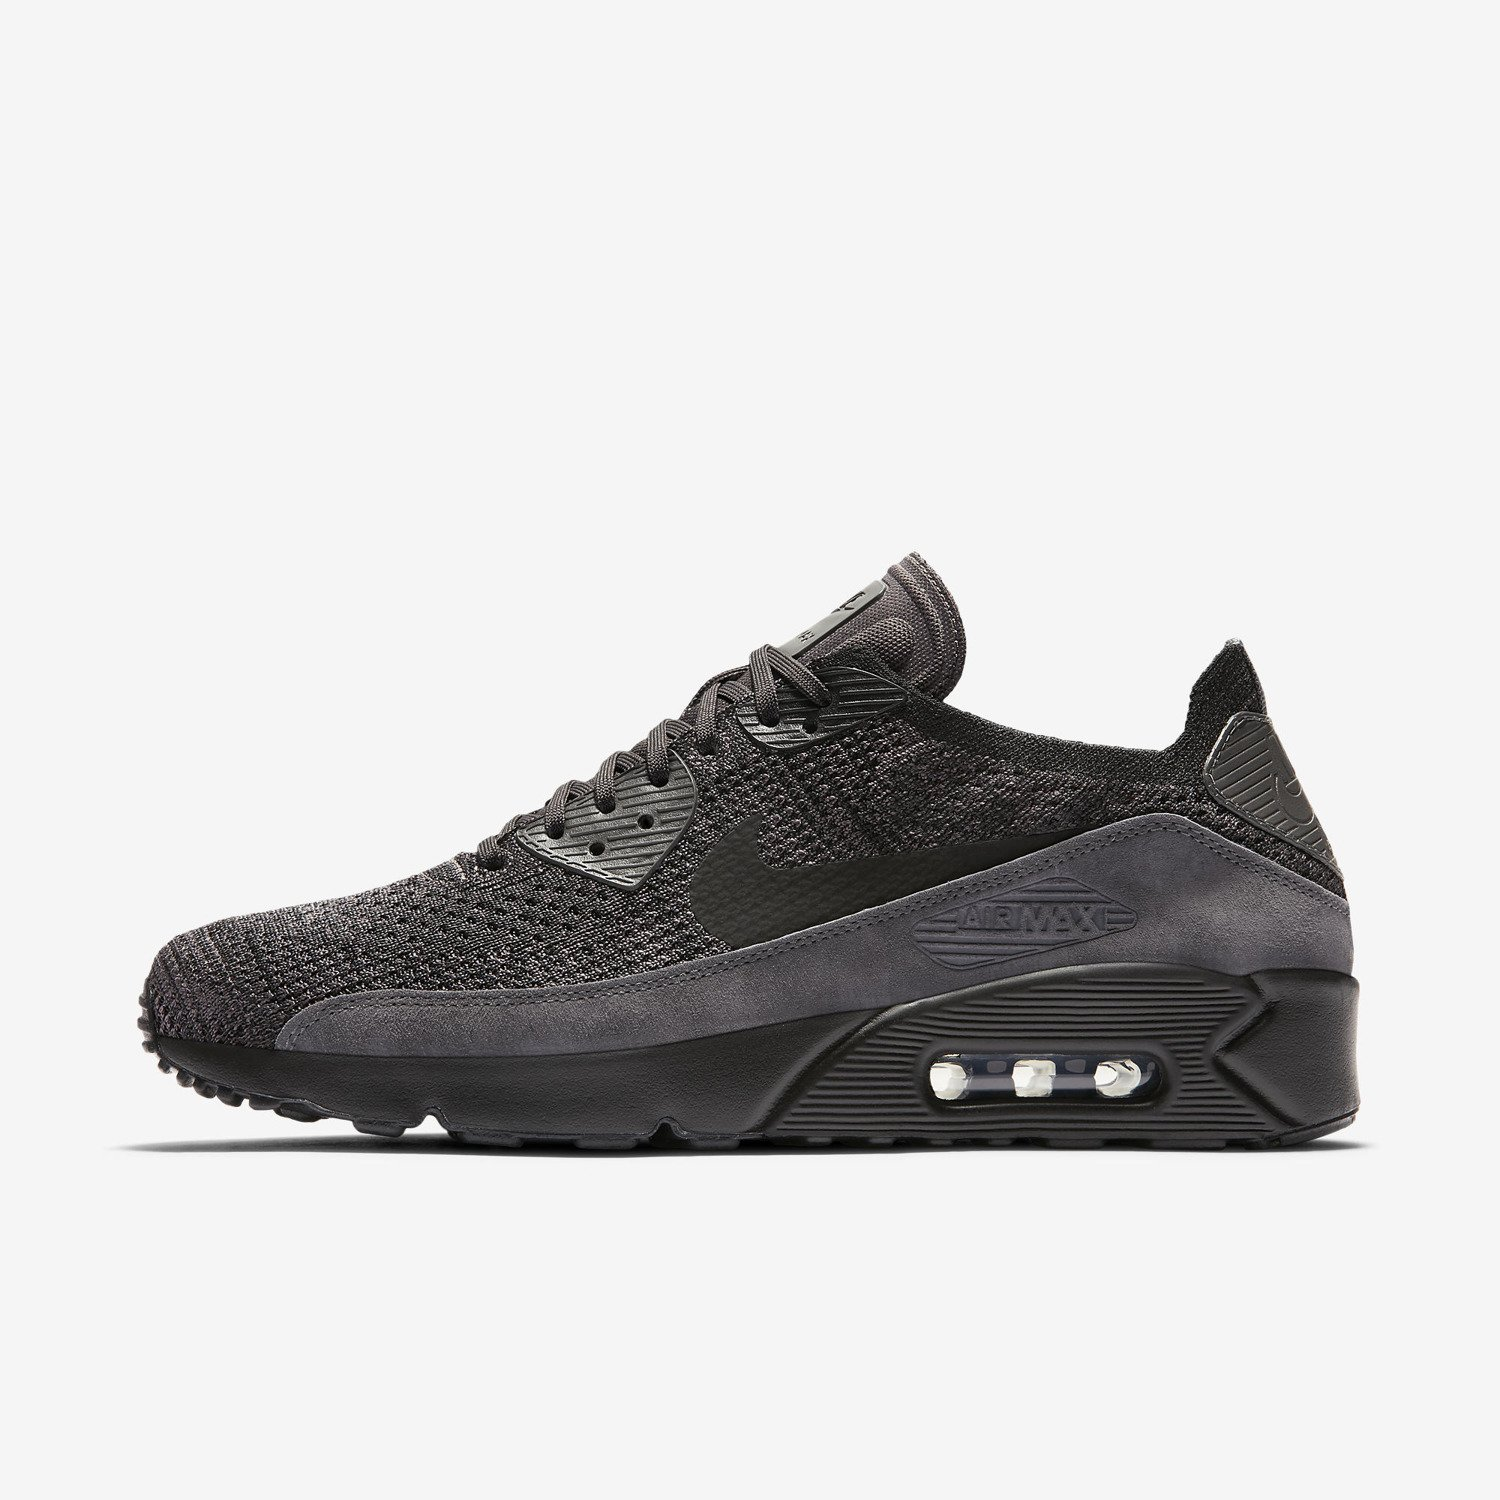 Buty Nike Air Max 90 Ultra 2.0 Flyknit Thunder Grey 875943 008